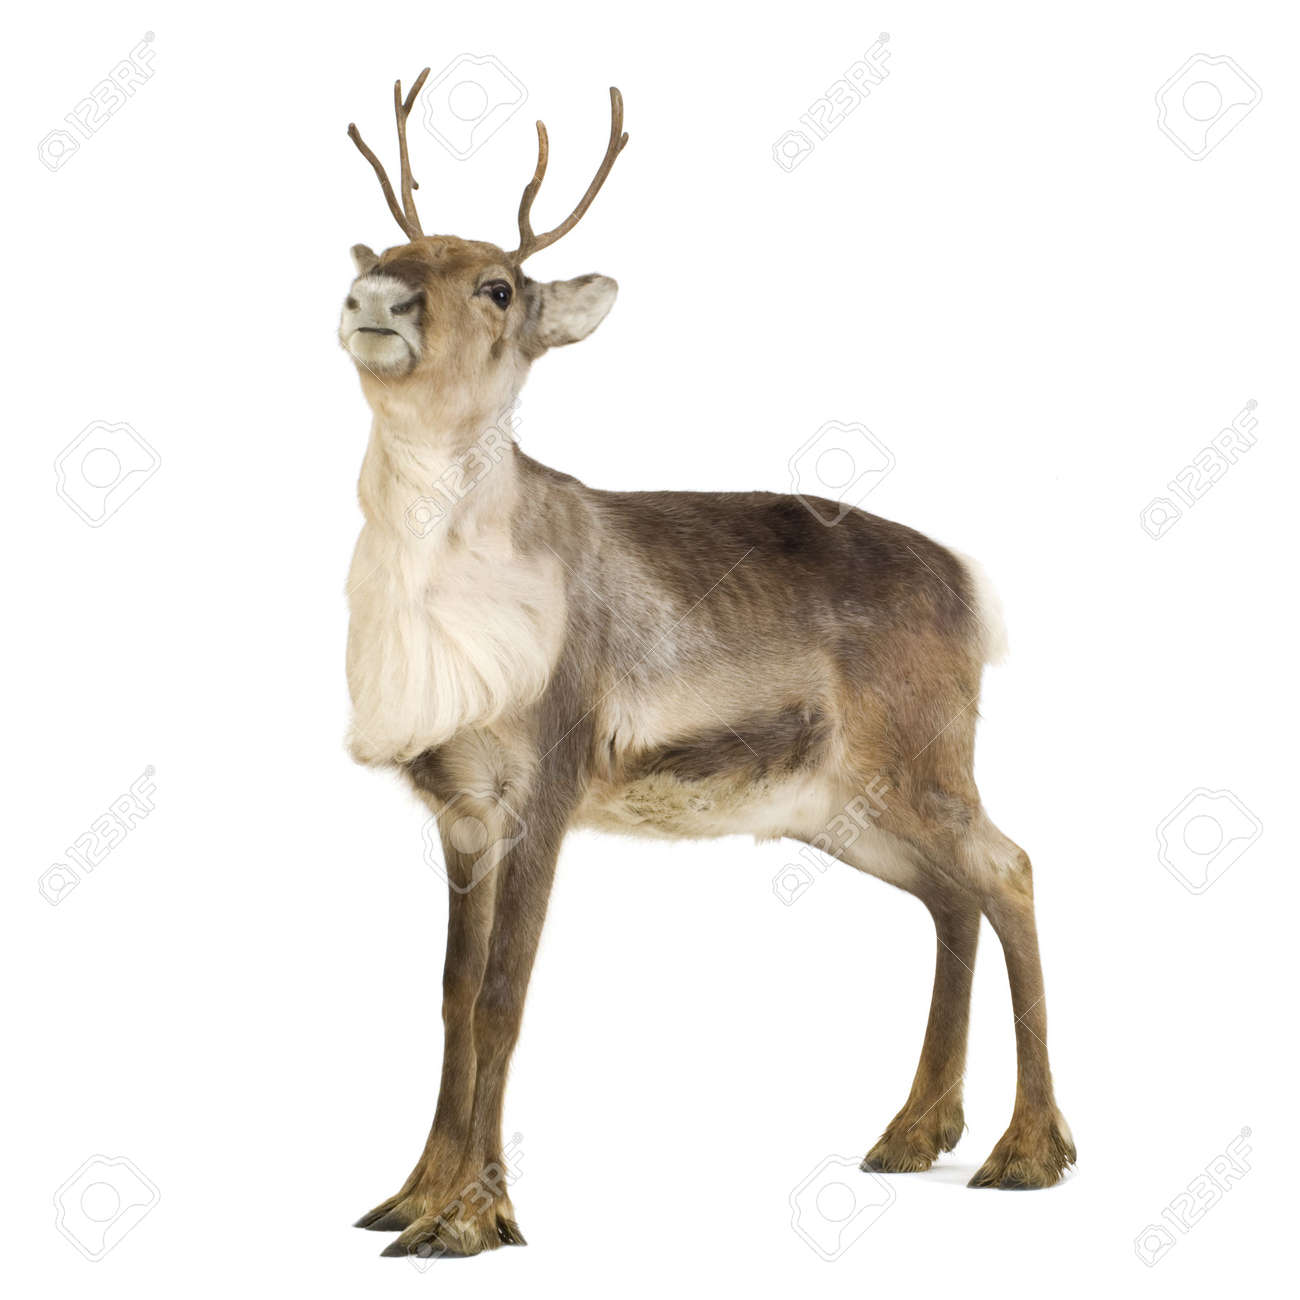 reindeer 2 years in front of a white background stock photo 2633188 - Reindeer Images 2